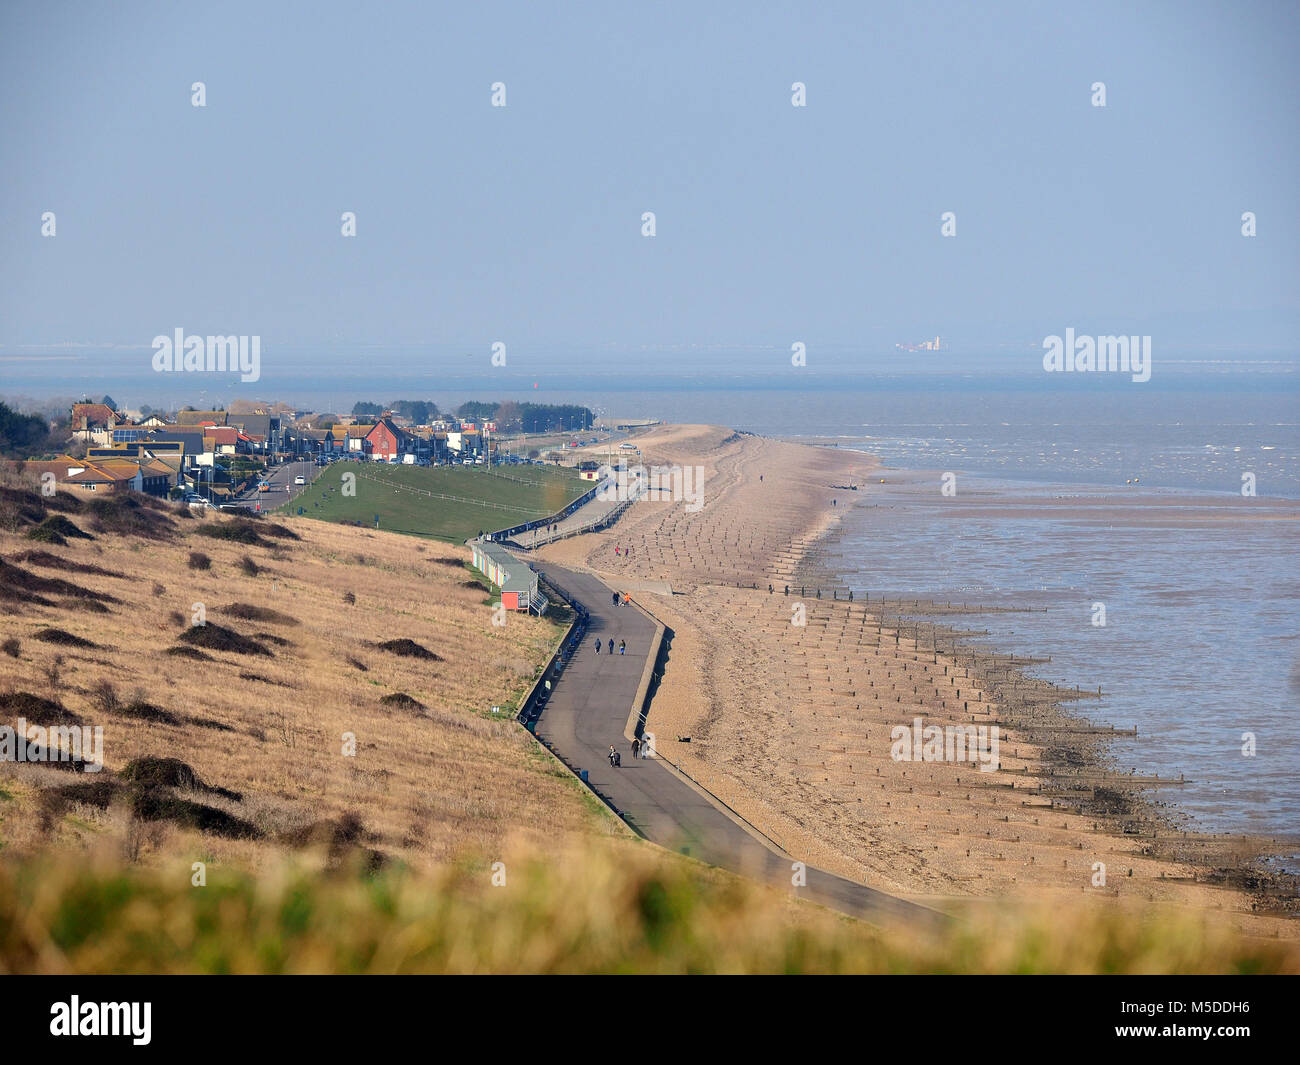 Minster on sea, Kent, UK. 22nd Feb, 2018. UK Weather: a bright and sunny day in Minster on sea but with a cold north easterly force 4-5 wind. Temp 4c, wind chill -1c. Credit: James Bell/Alamy Live News Stock Photo